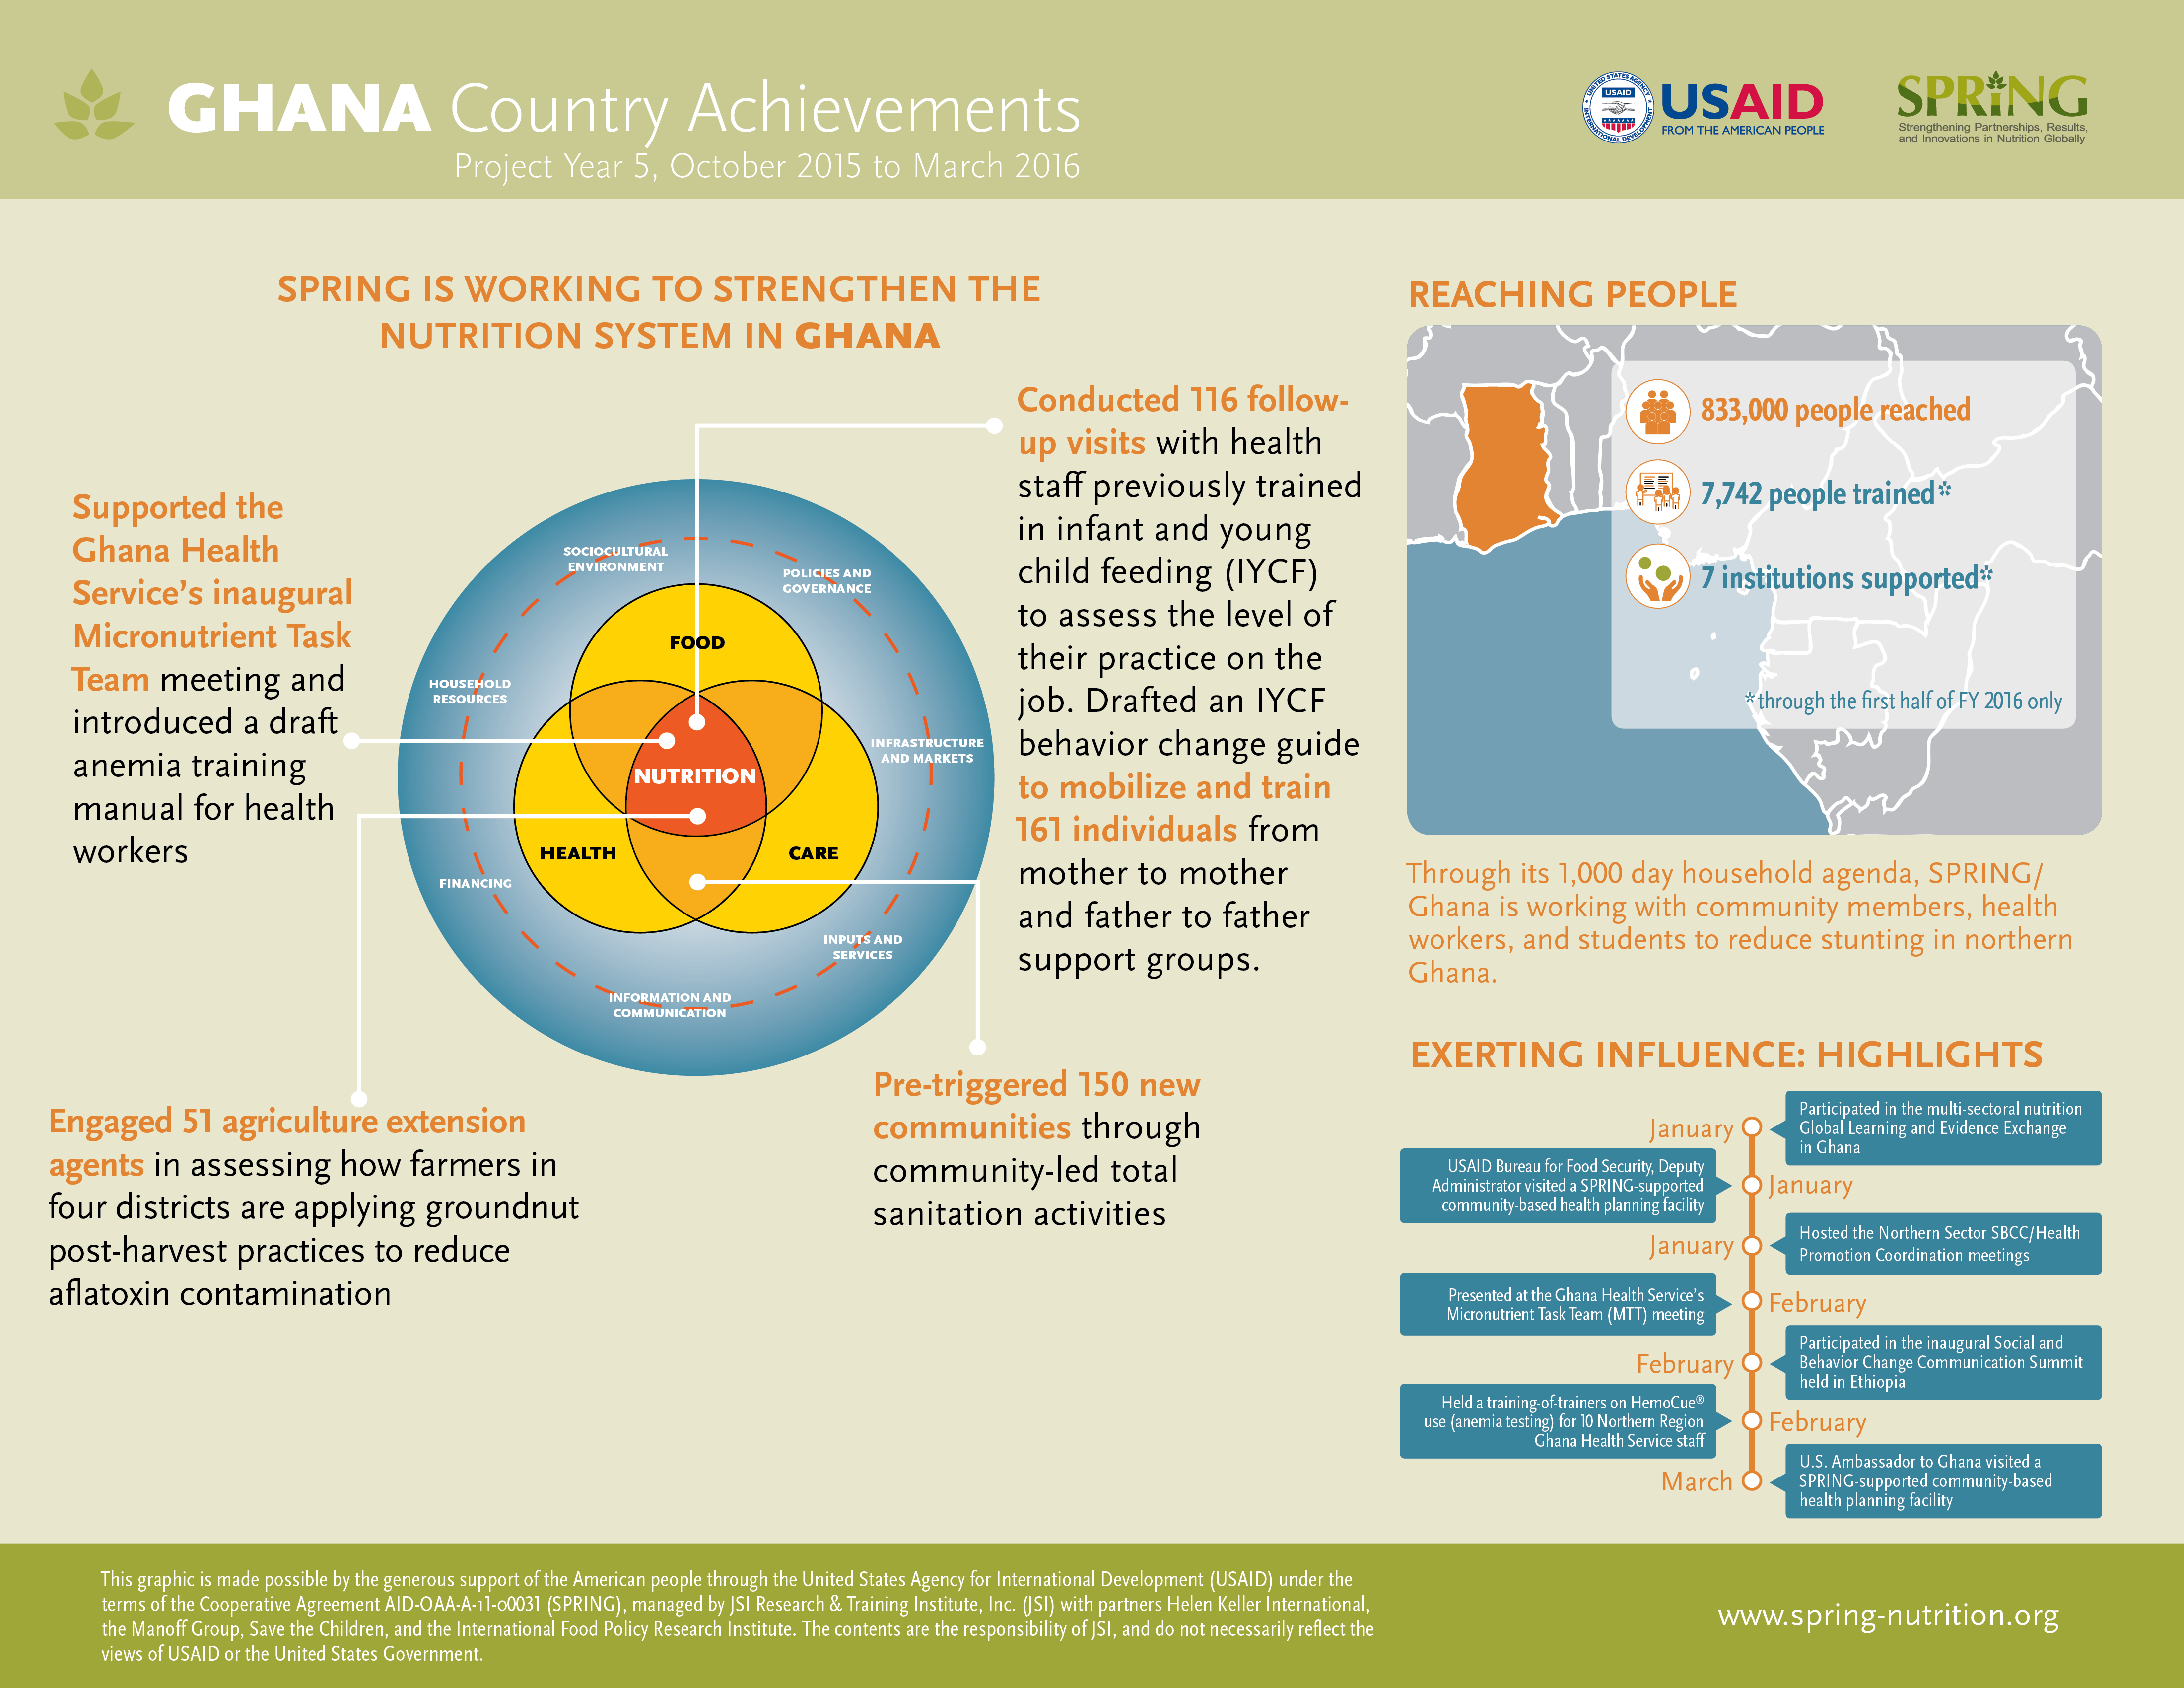 Ghana Country Achievements, Project Year 5, October 2015 to March 2016